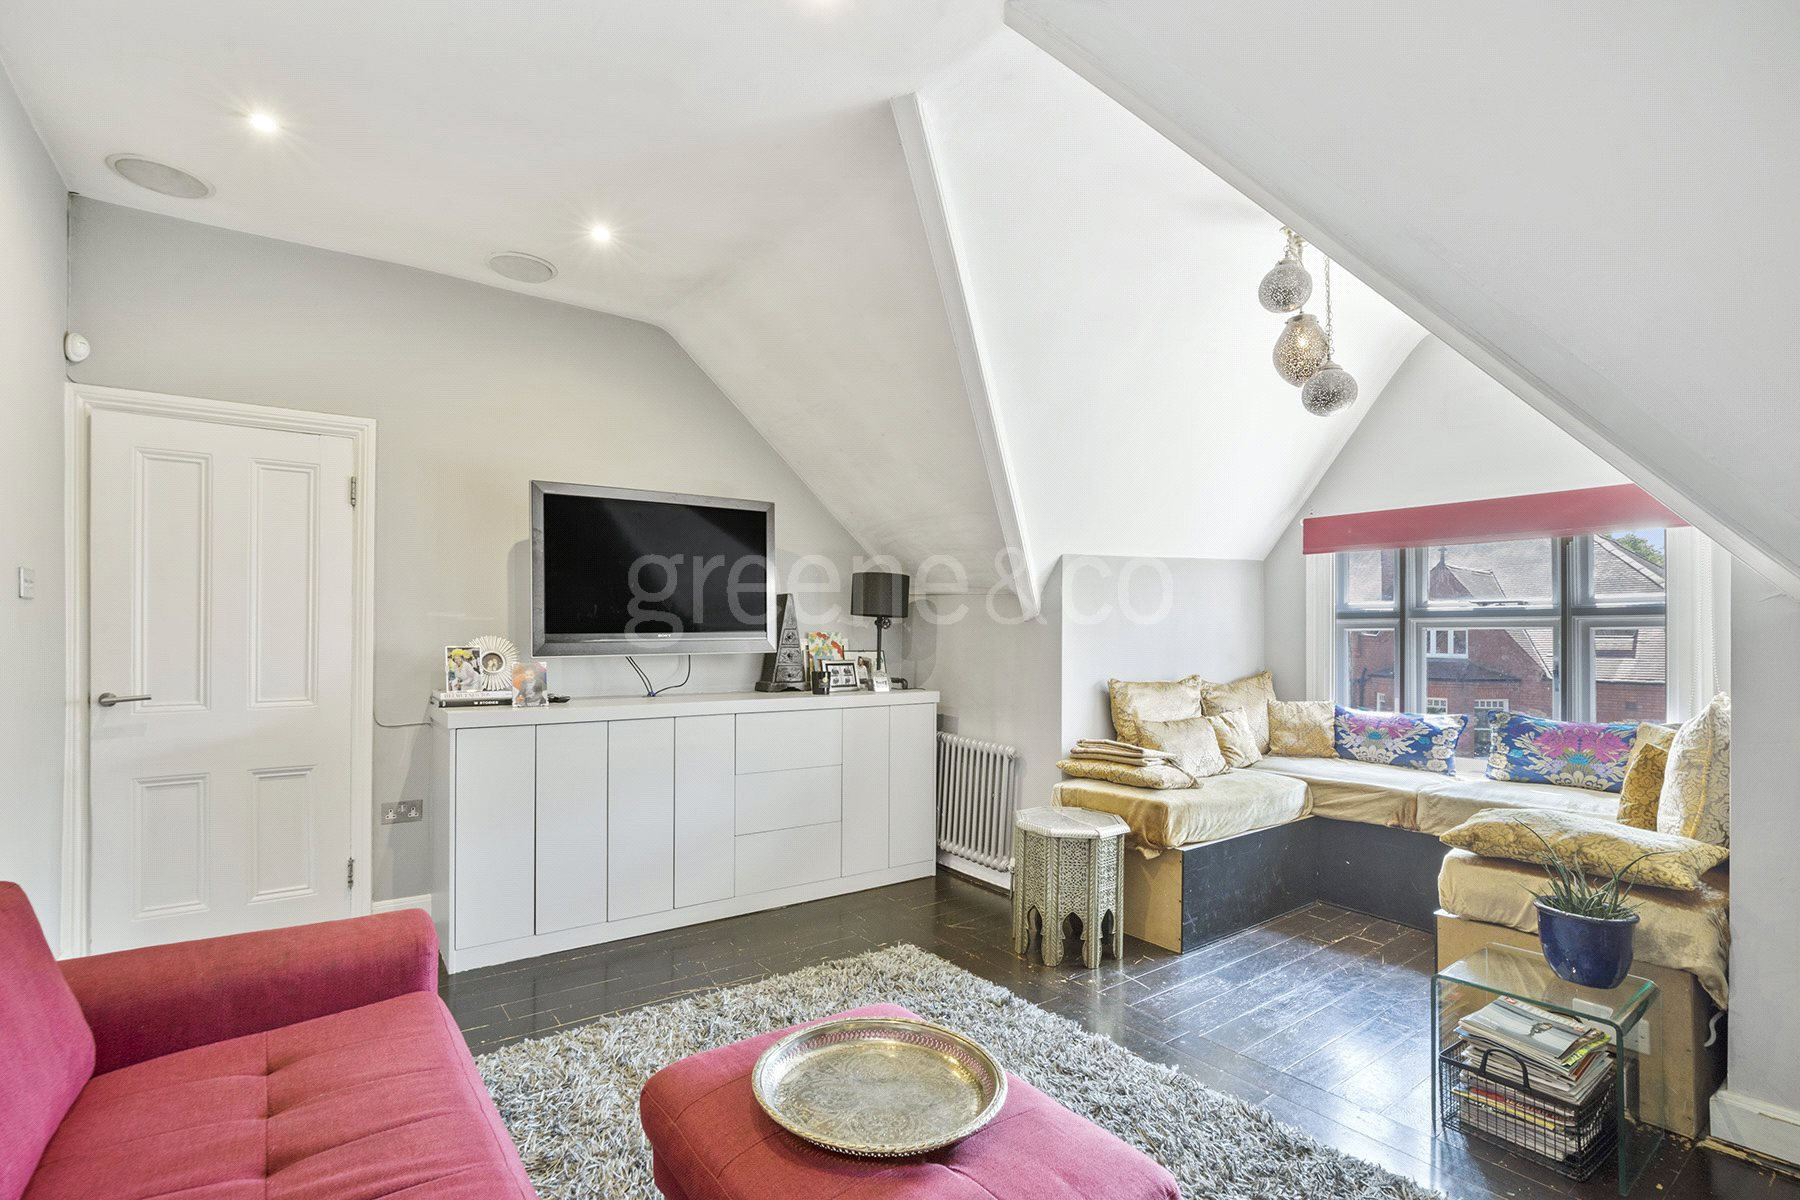 2 Bedrooms Flat for sale in Lambolle Road, Belsize Park, London, NW3